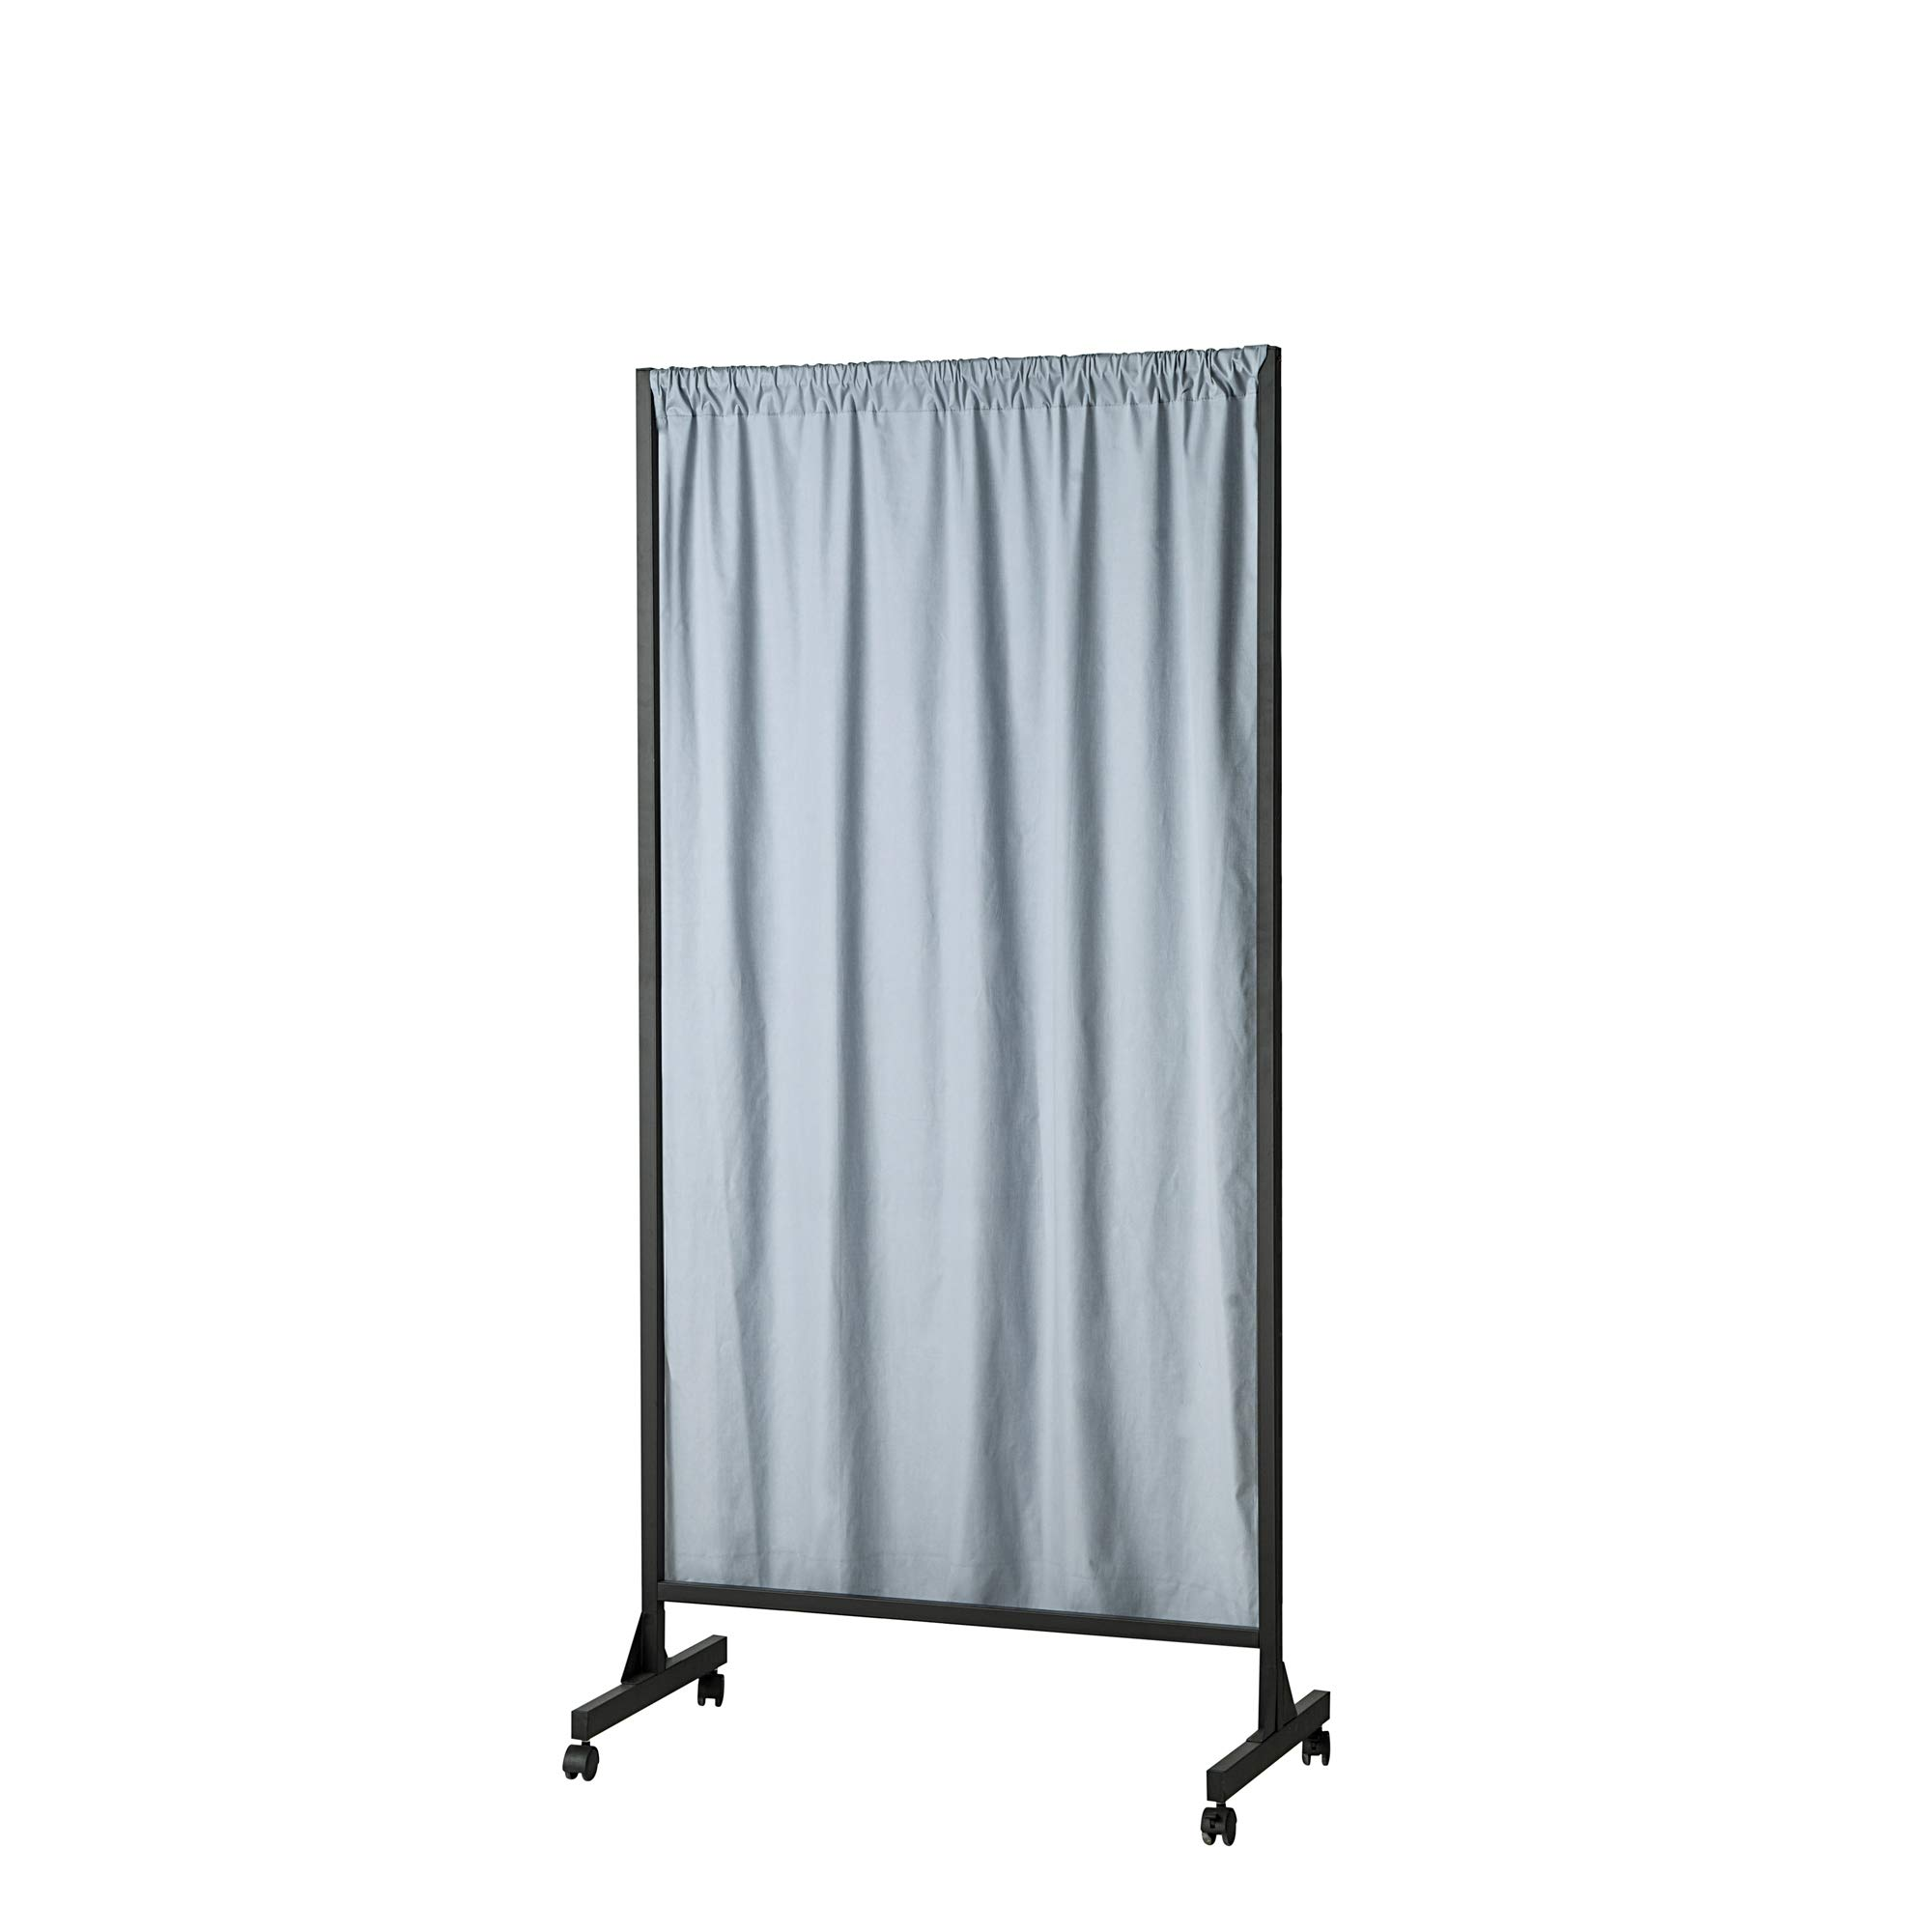 Don't Look at Me - Partial Room Divider - Black Frame with Faded Denim Cotton Fabric